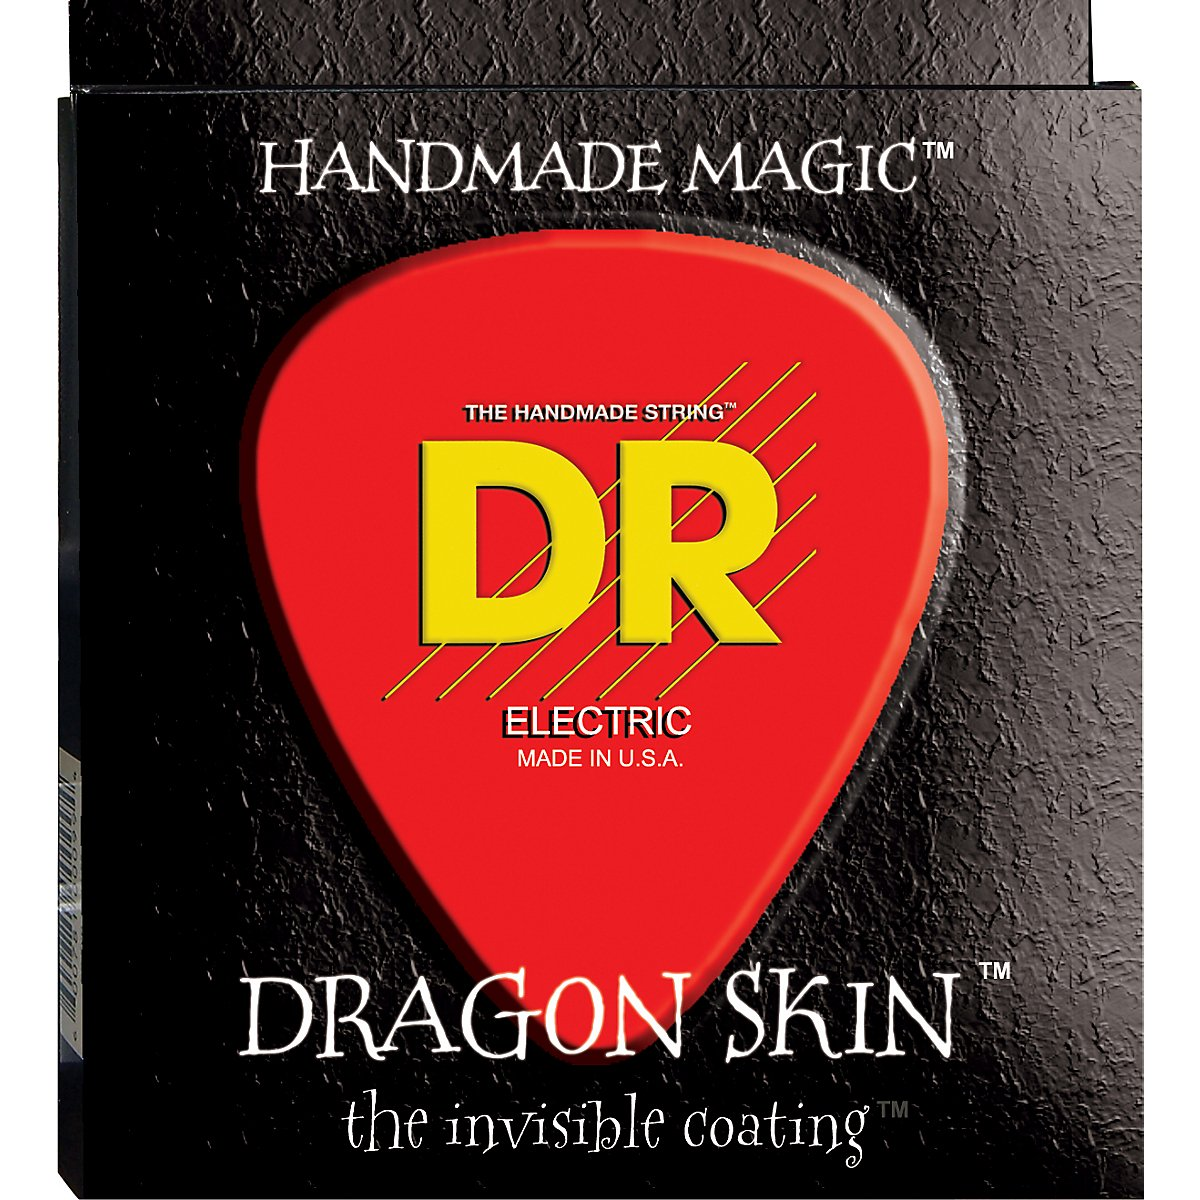 DR Handmade Strings DSE-10 DR Dragon Skin Electric with K3 technology Coating, Medium 10-46 dr strings nmcb 40 nmcb 45 nmcb5 45 dr k3 neon bass guitar strings light multi color